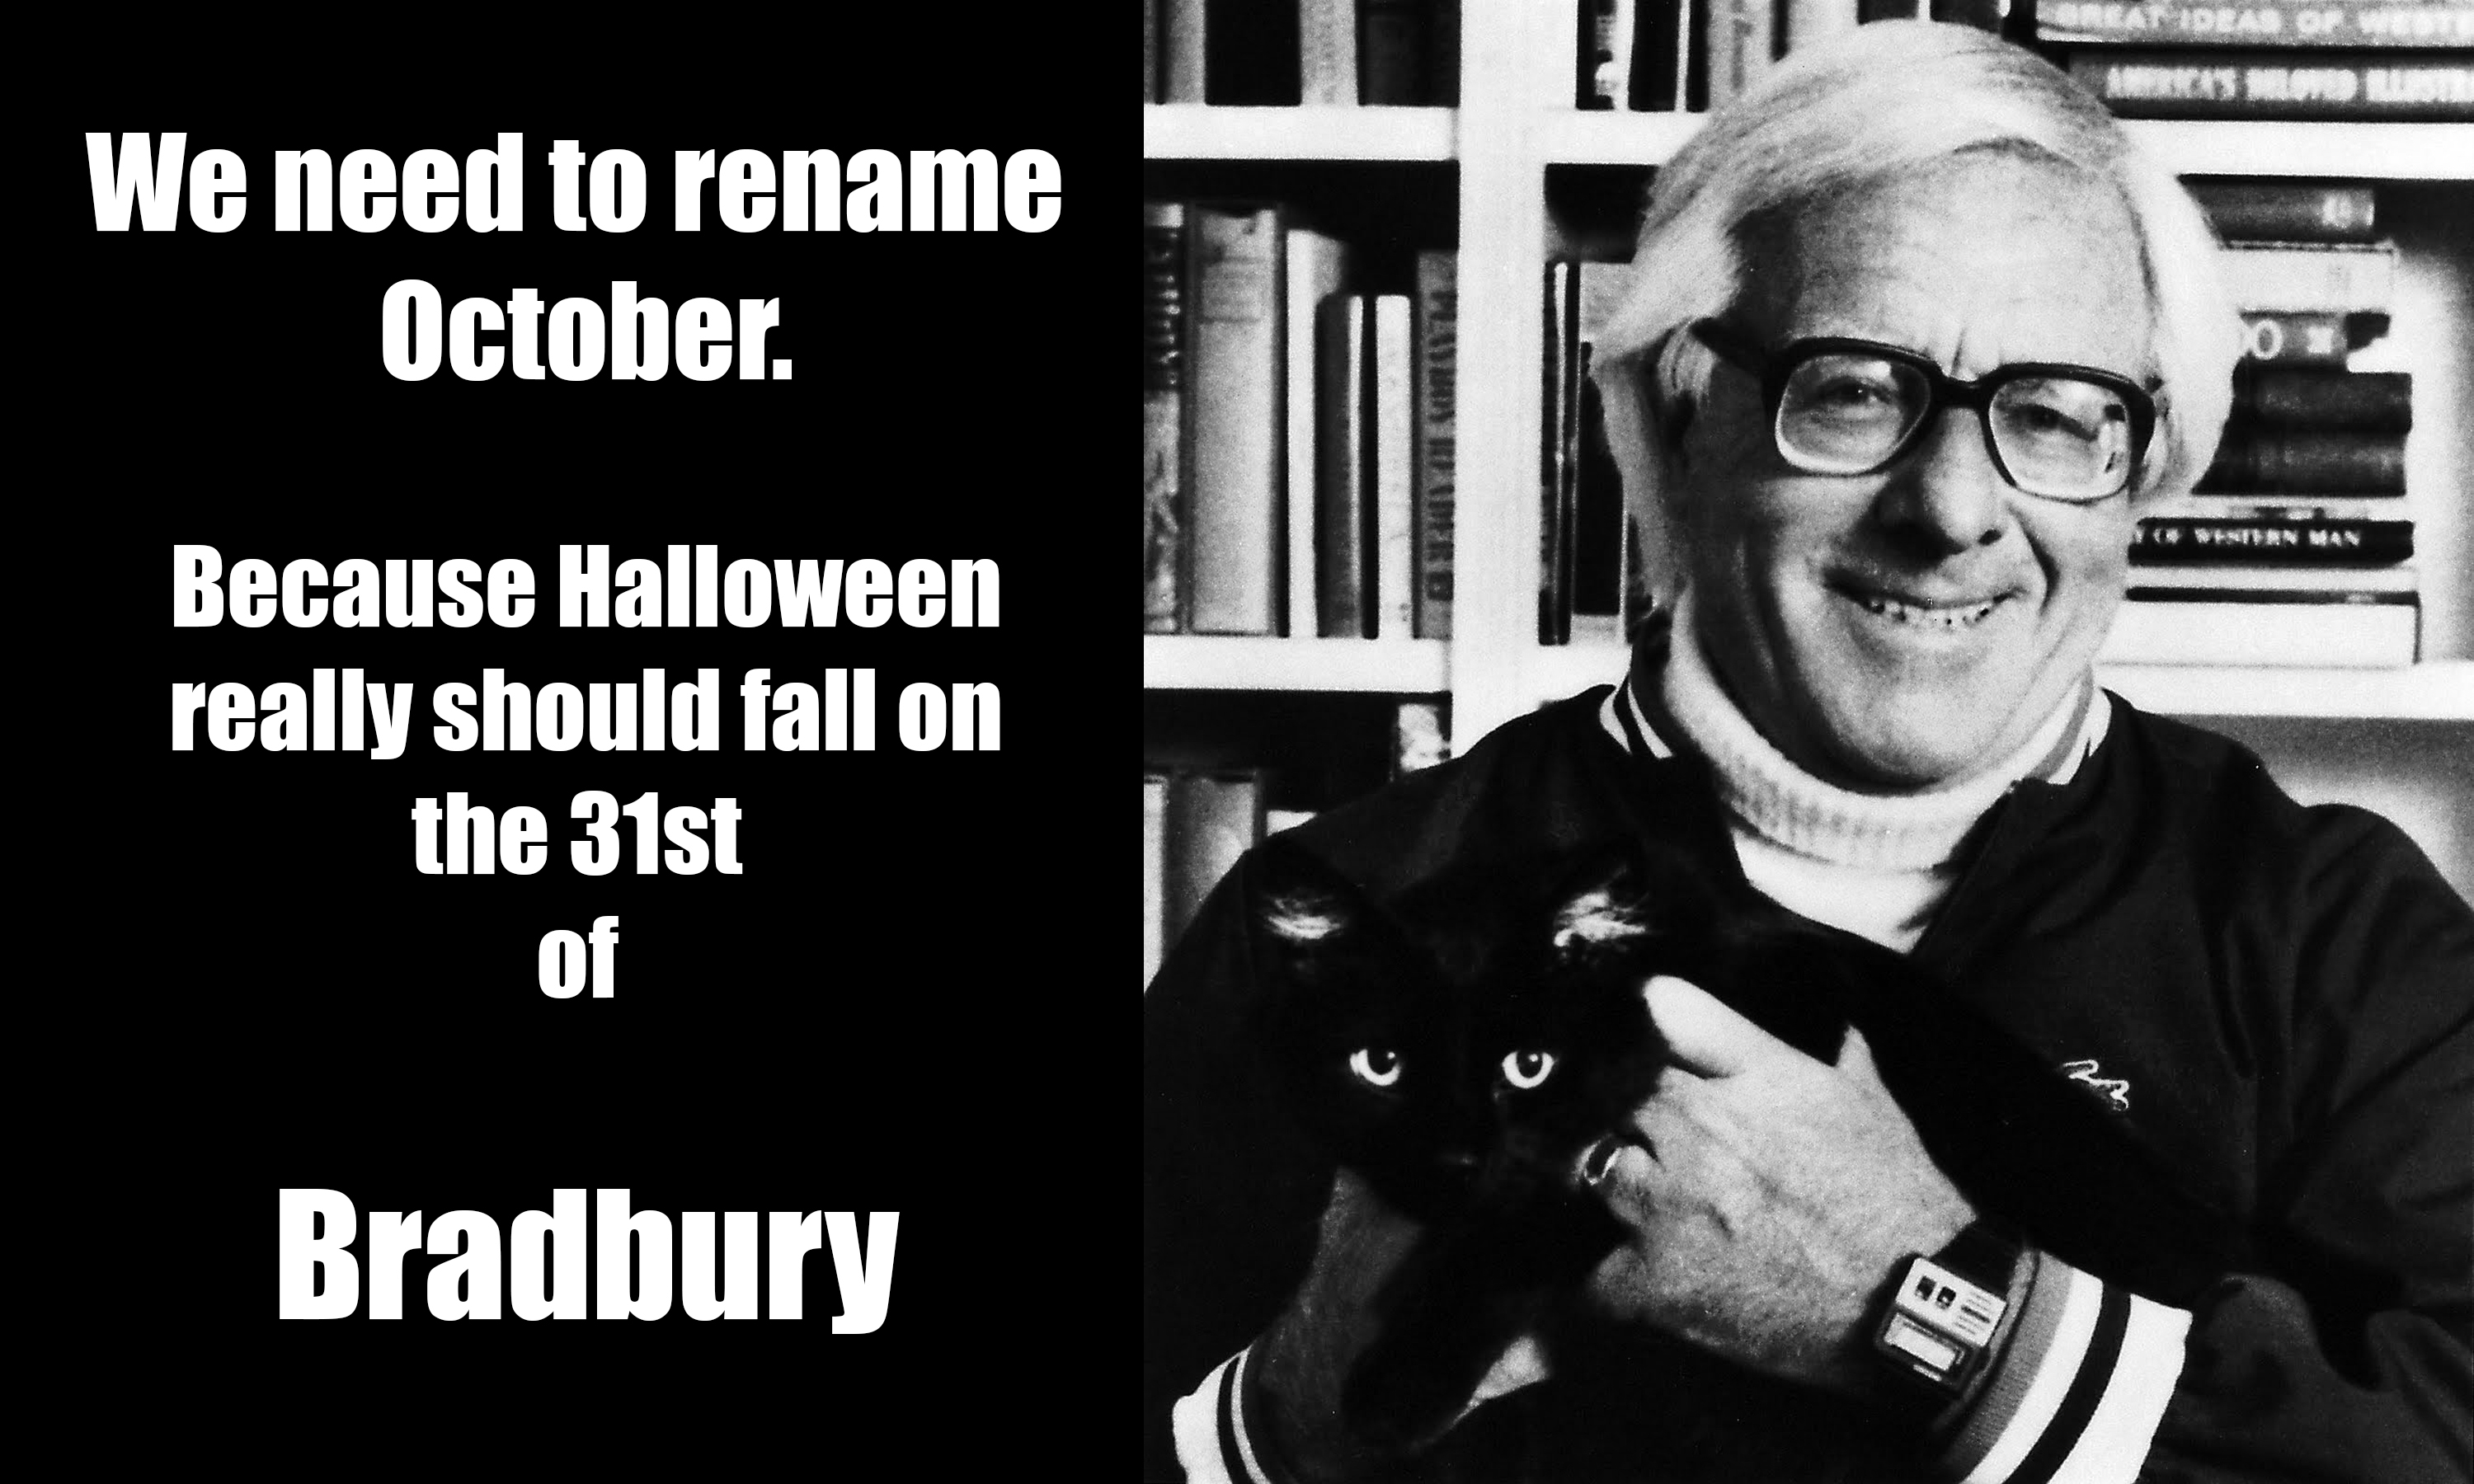 Rename October for Ray Bradbury